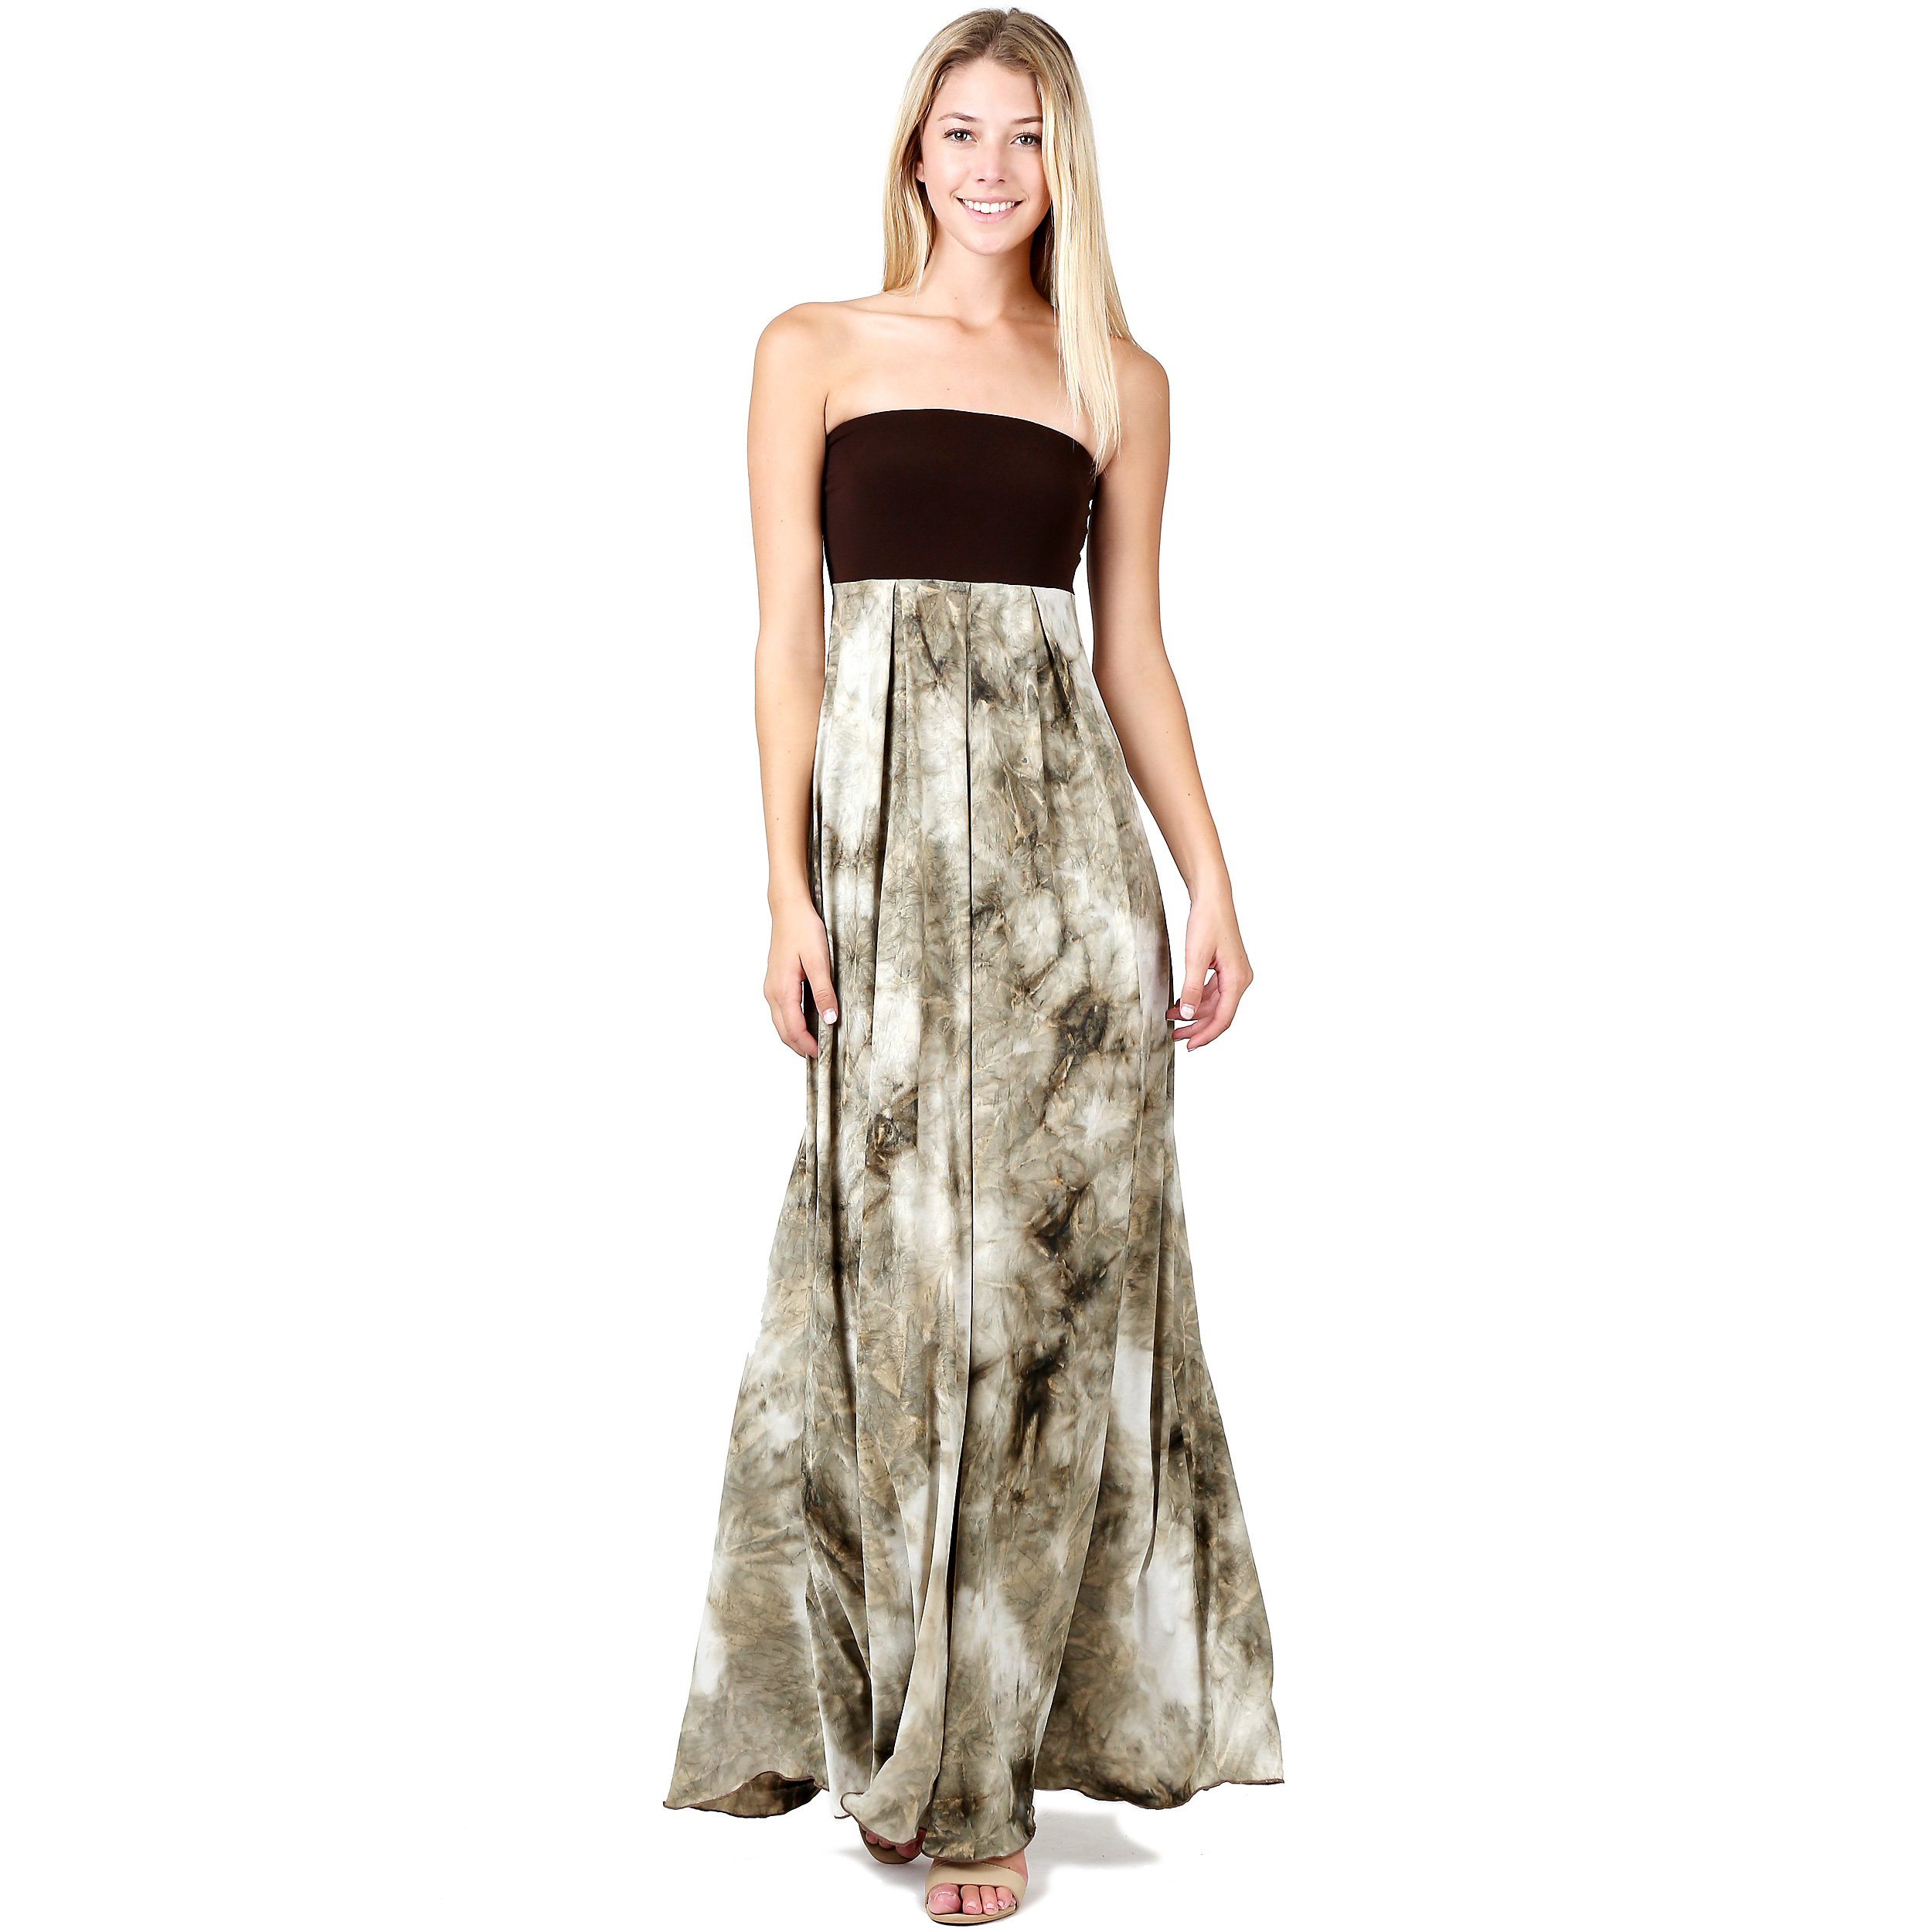 4fbc36a7c Evanese Women's Cocktail Strapless Tube Tie dye Print Maxi Long Dress is a  sassy addition to your closet. This long dress features contrast strapless  tube ...